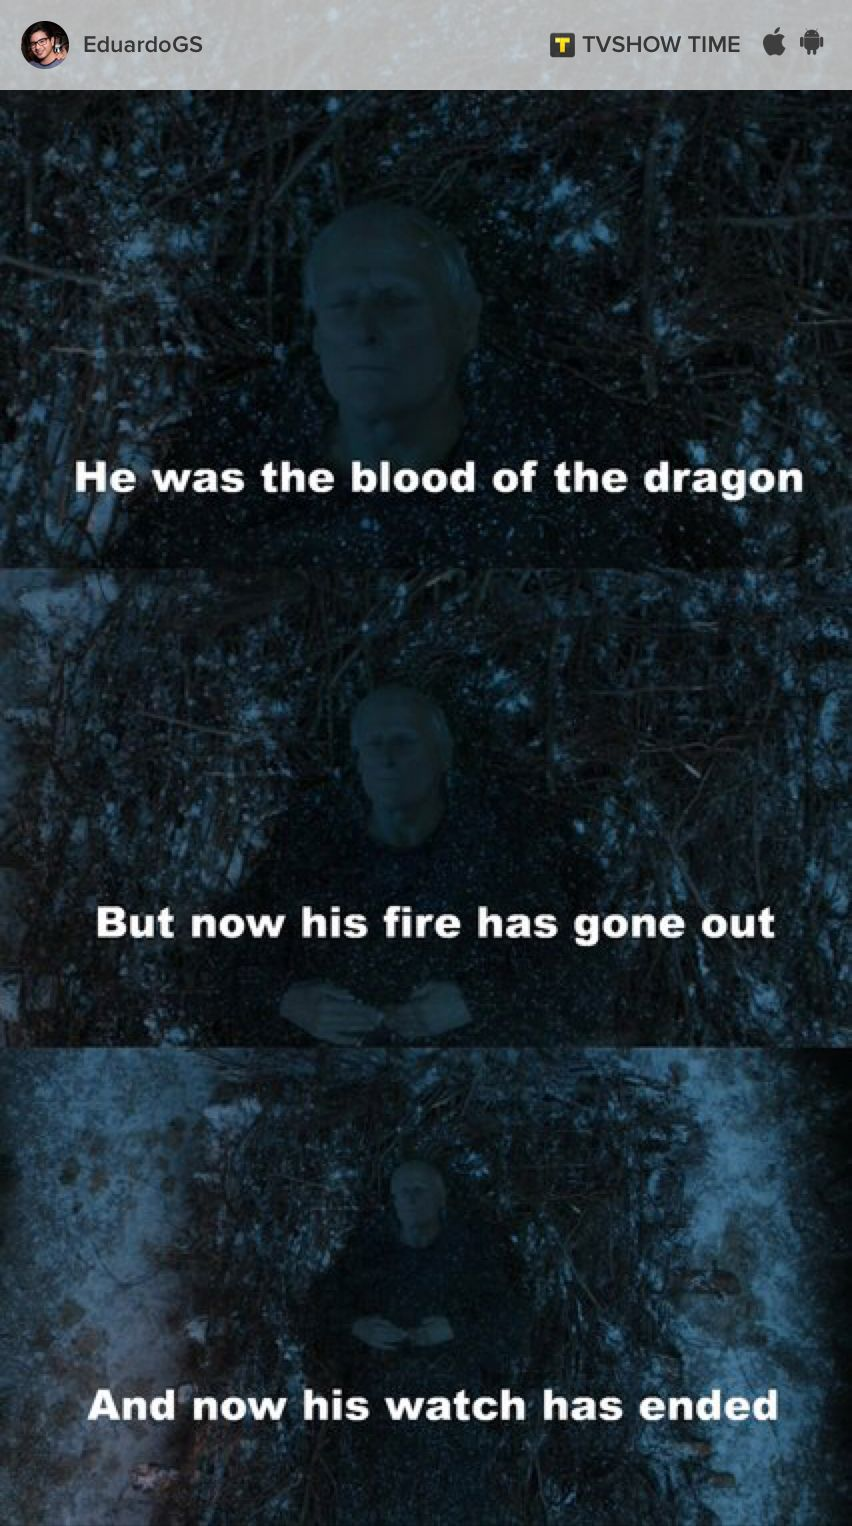 You're losing all your friends Tarly